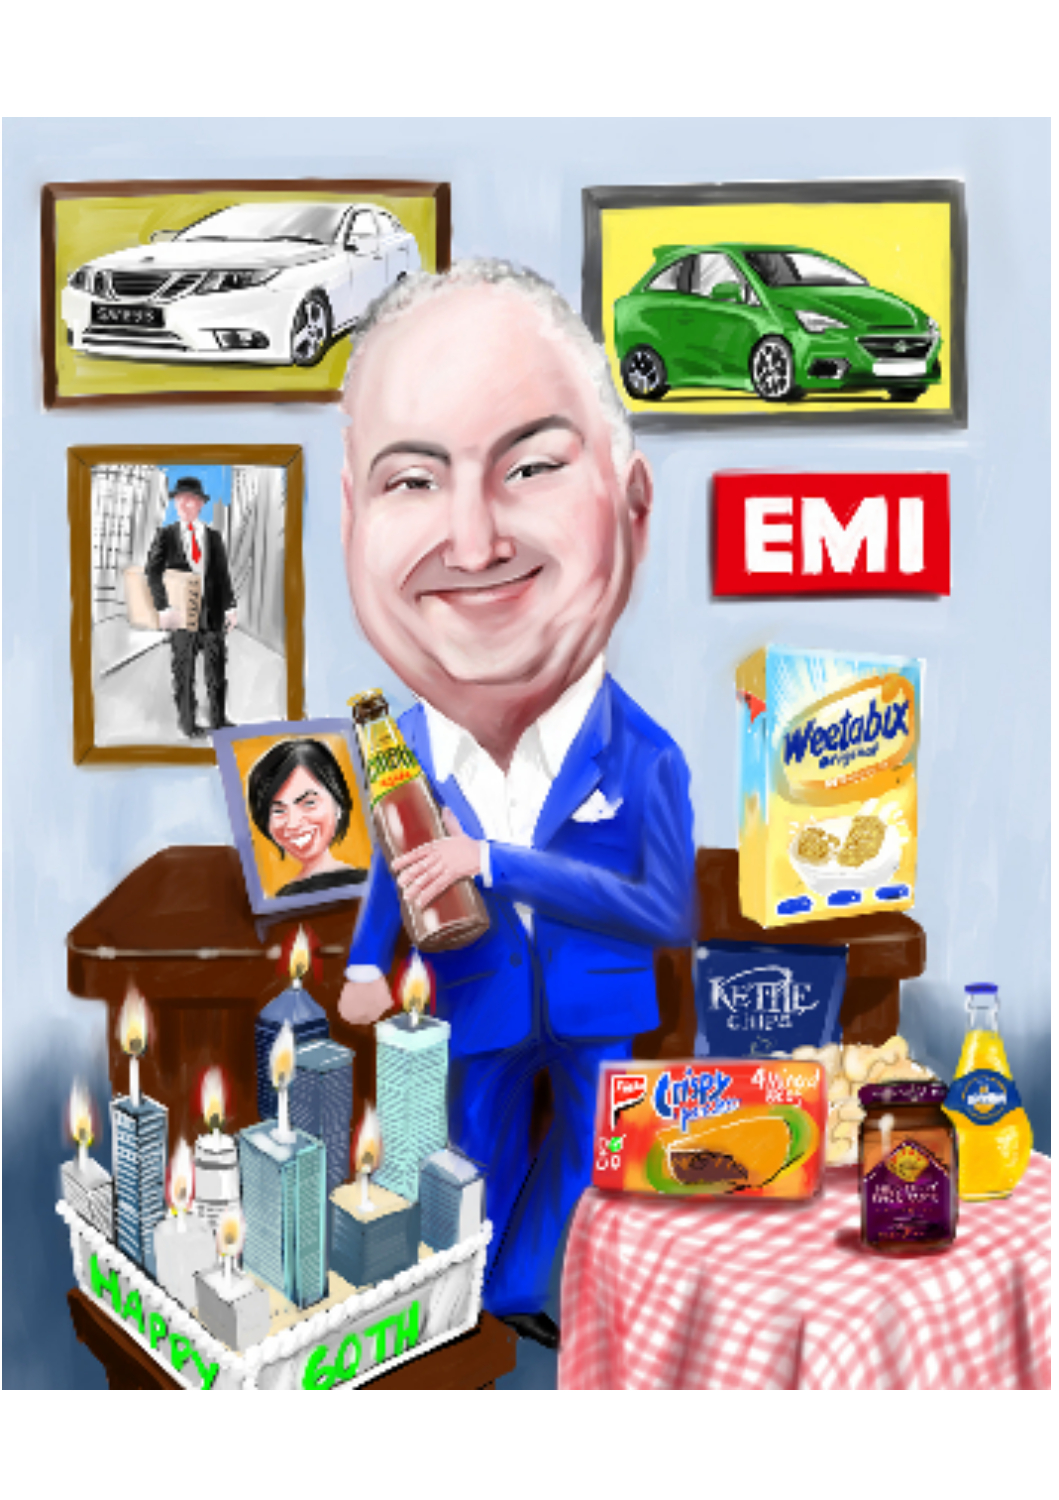 Fulll colour caricature of businessman with company products and cake designed like City buildings